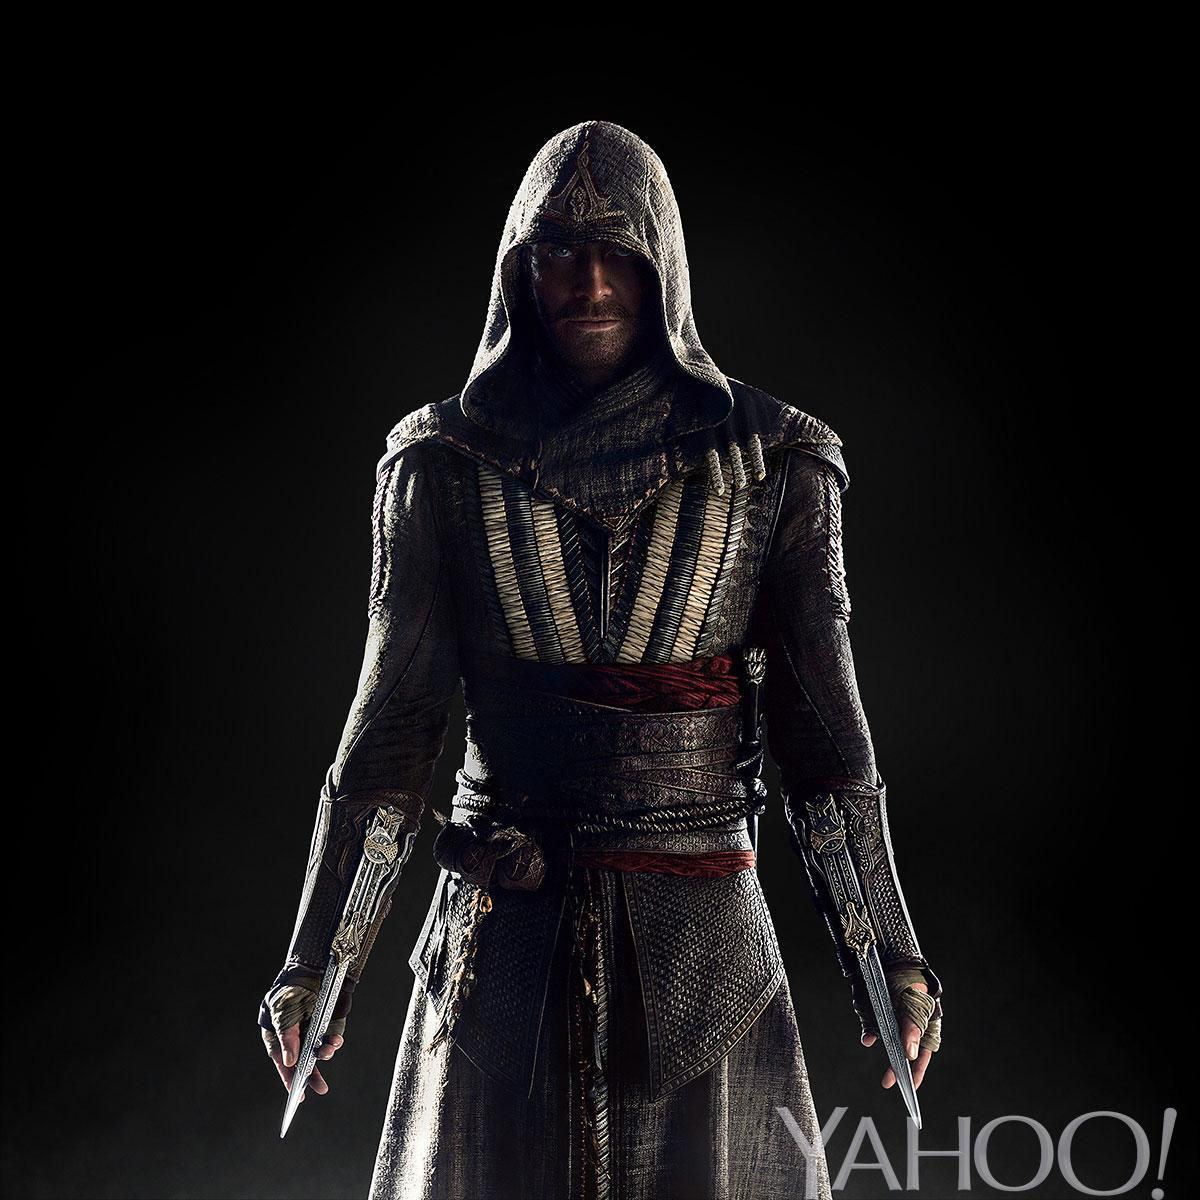 New Images Emerge From Set Of Assassins Creed Movie UNILAD assassinscreed fassbender.013